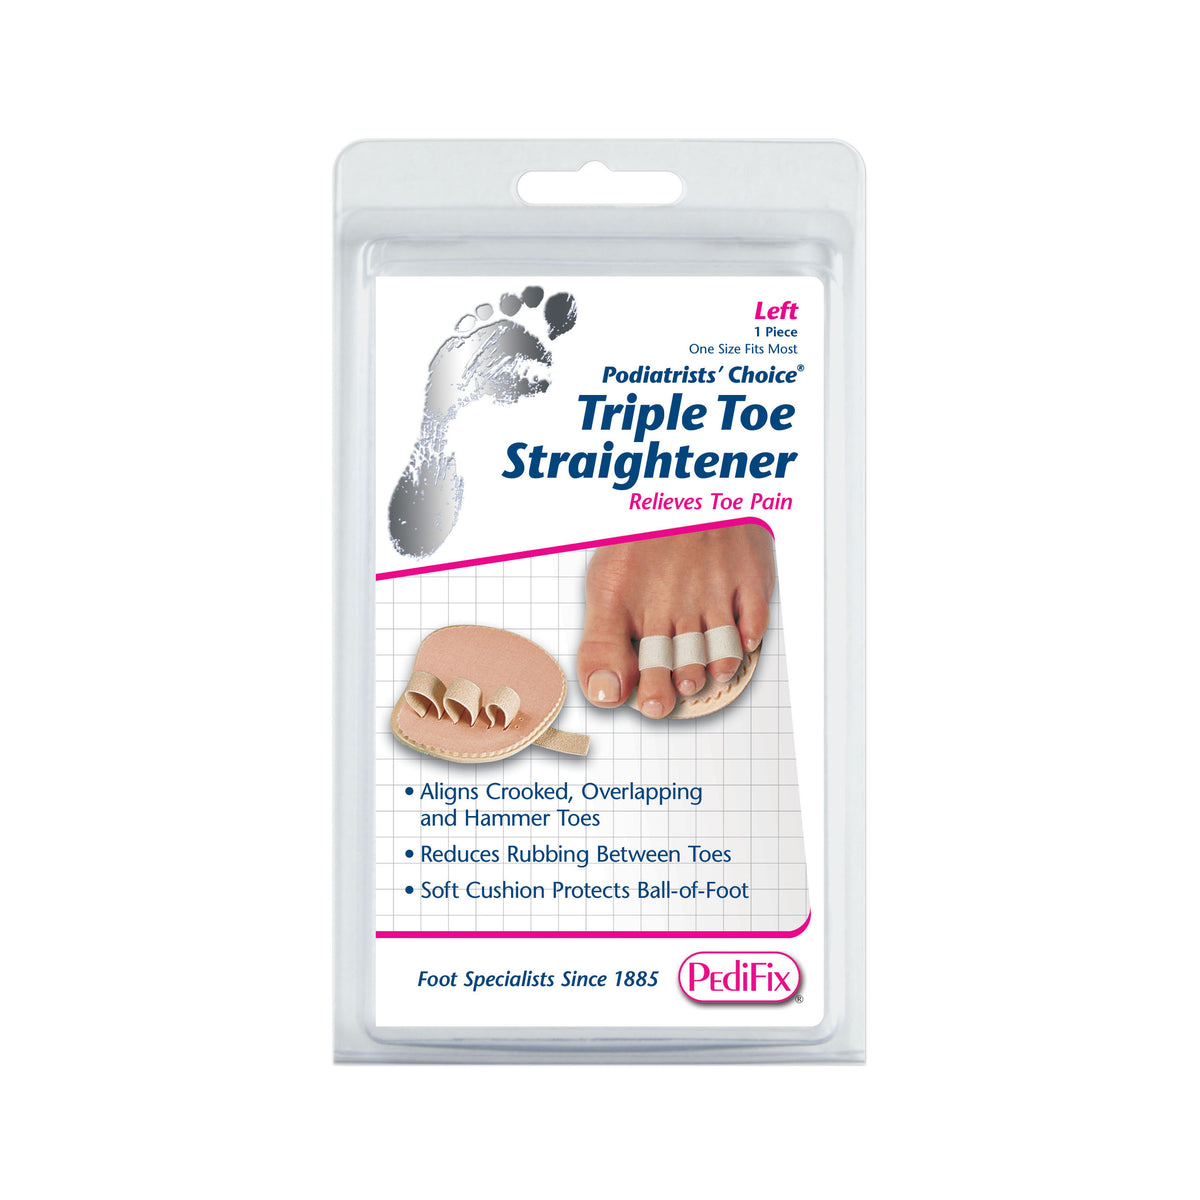 PEDIFIX TRIPLE TOE STRAIGHTENER LEFT FOOT